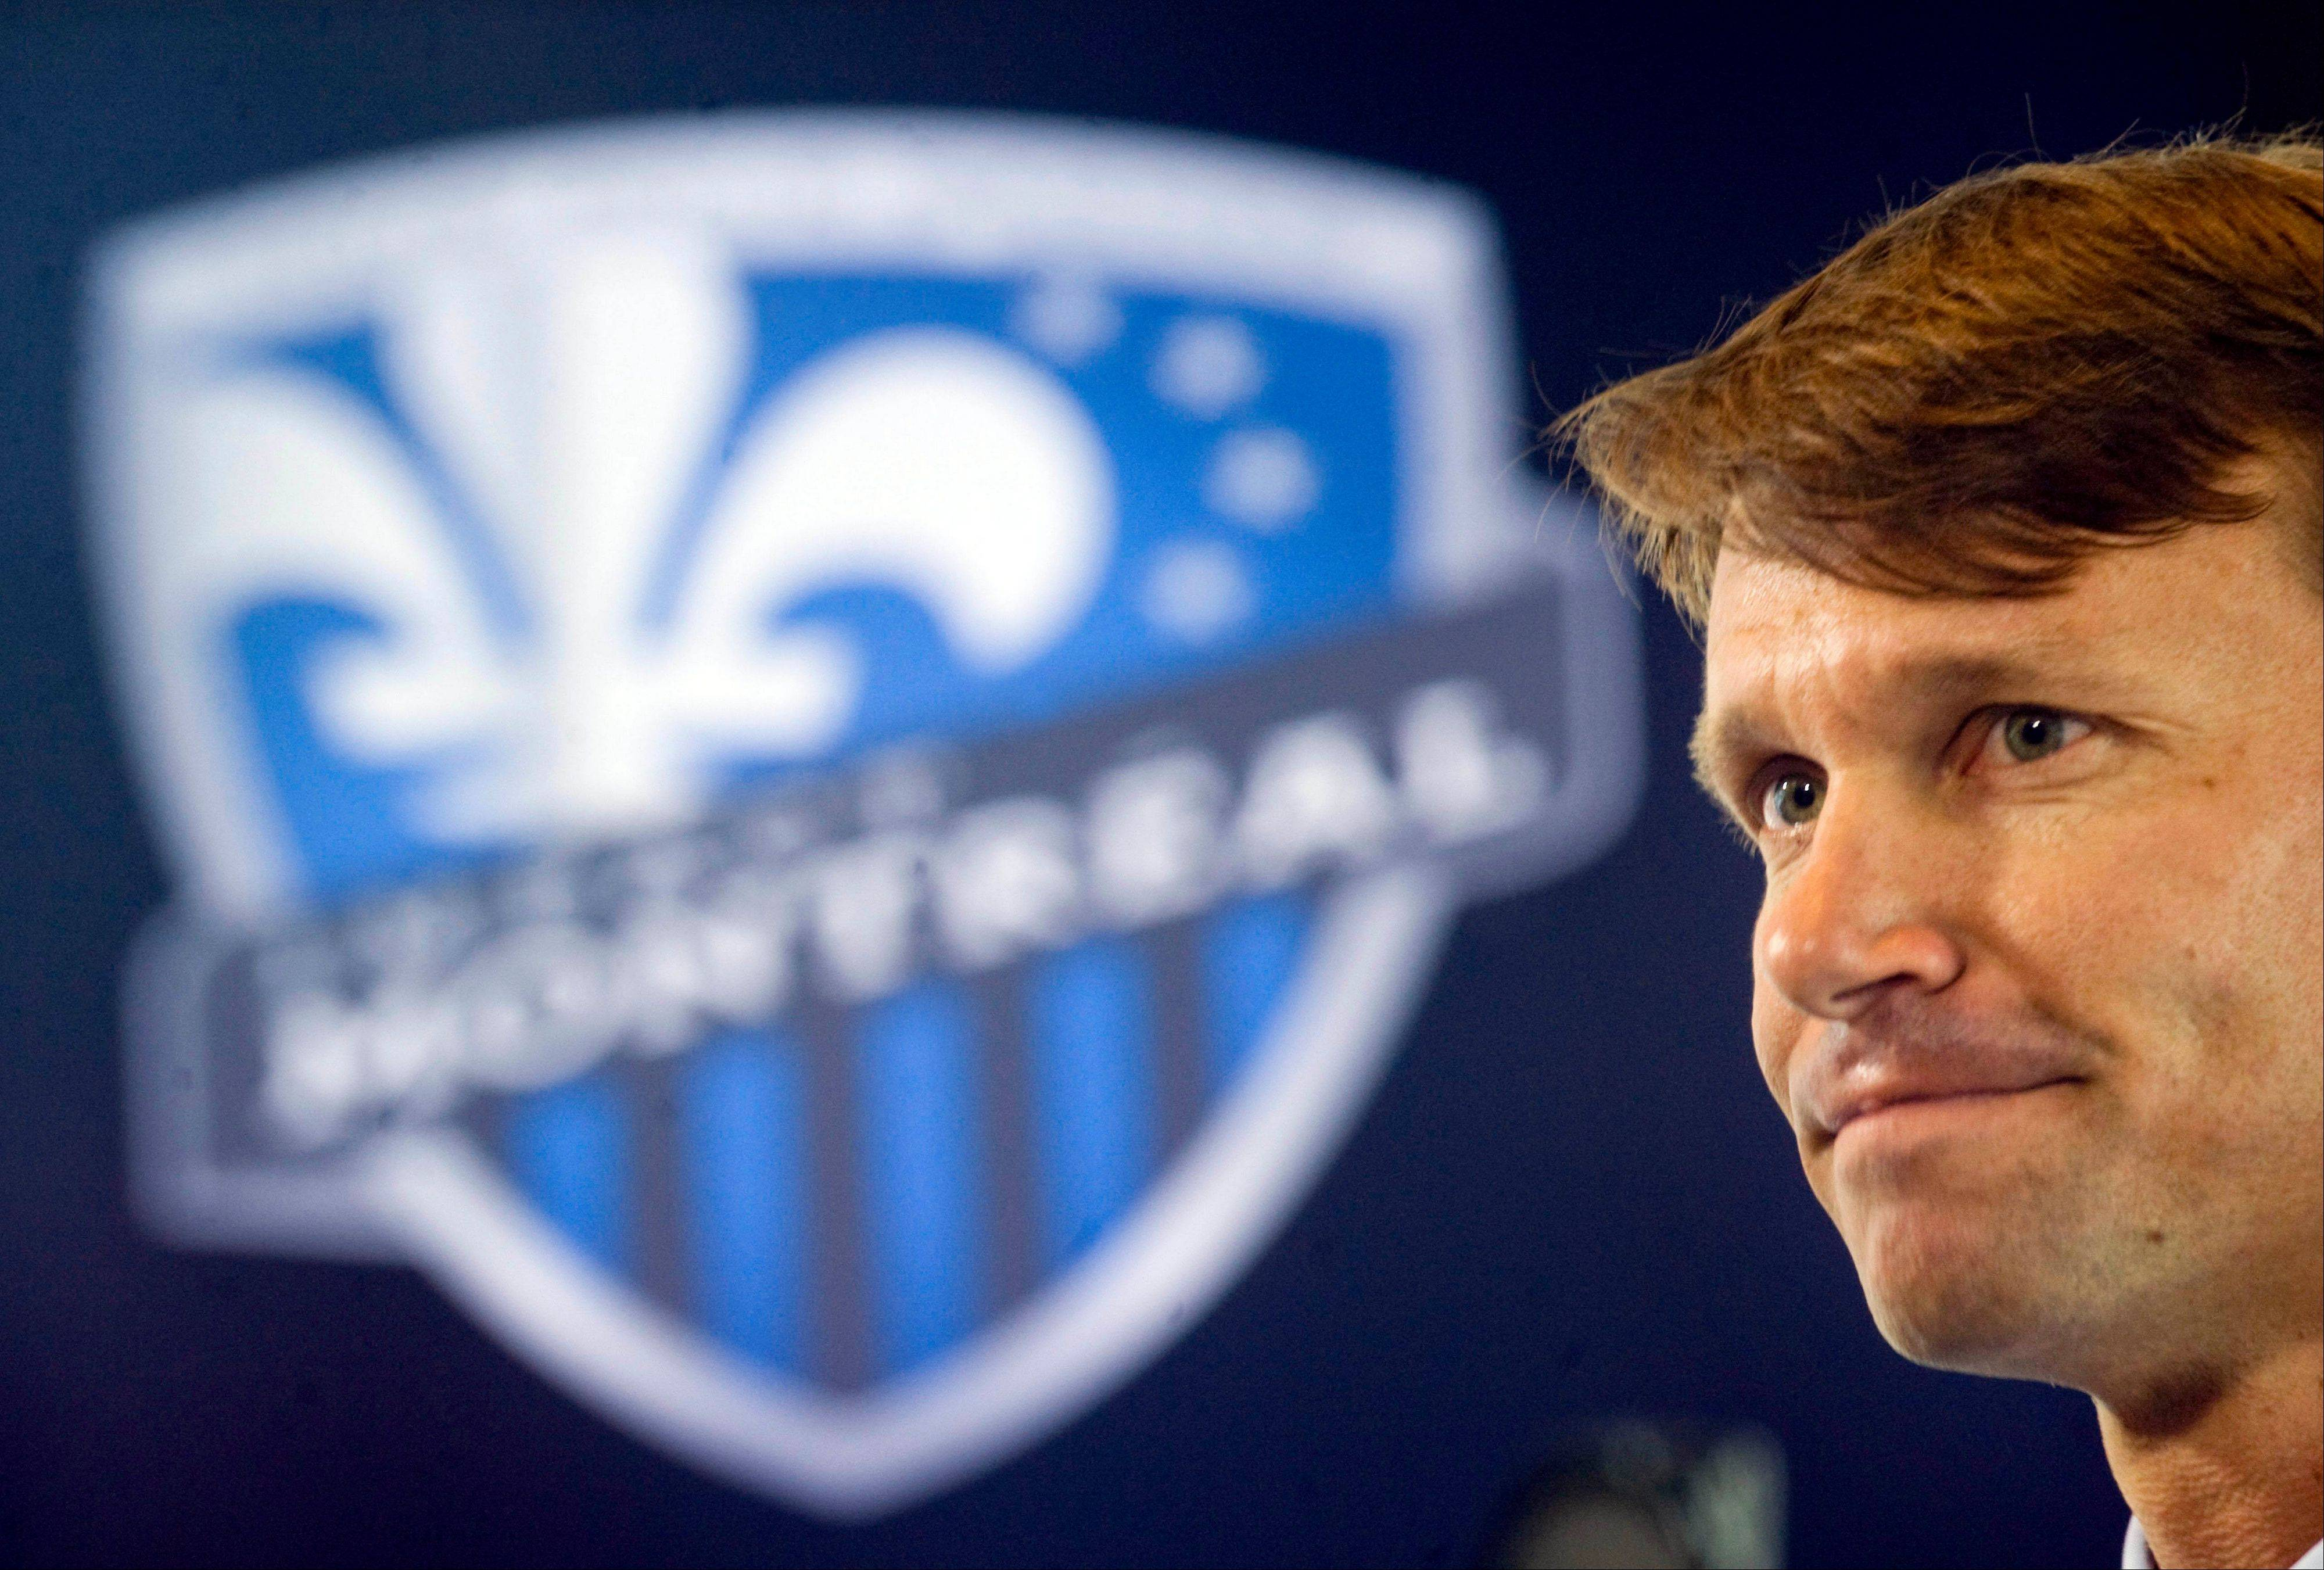 For Chicago Fire player Jesse Marsch was introduced Wednesday as the new head coach of the Montreal Impact soccer team, which will join Major League Soccer in 2012.